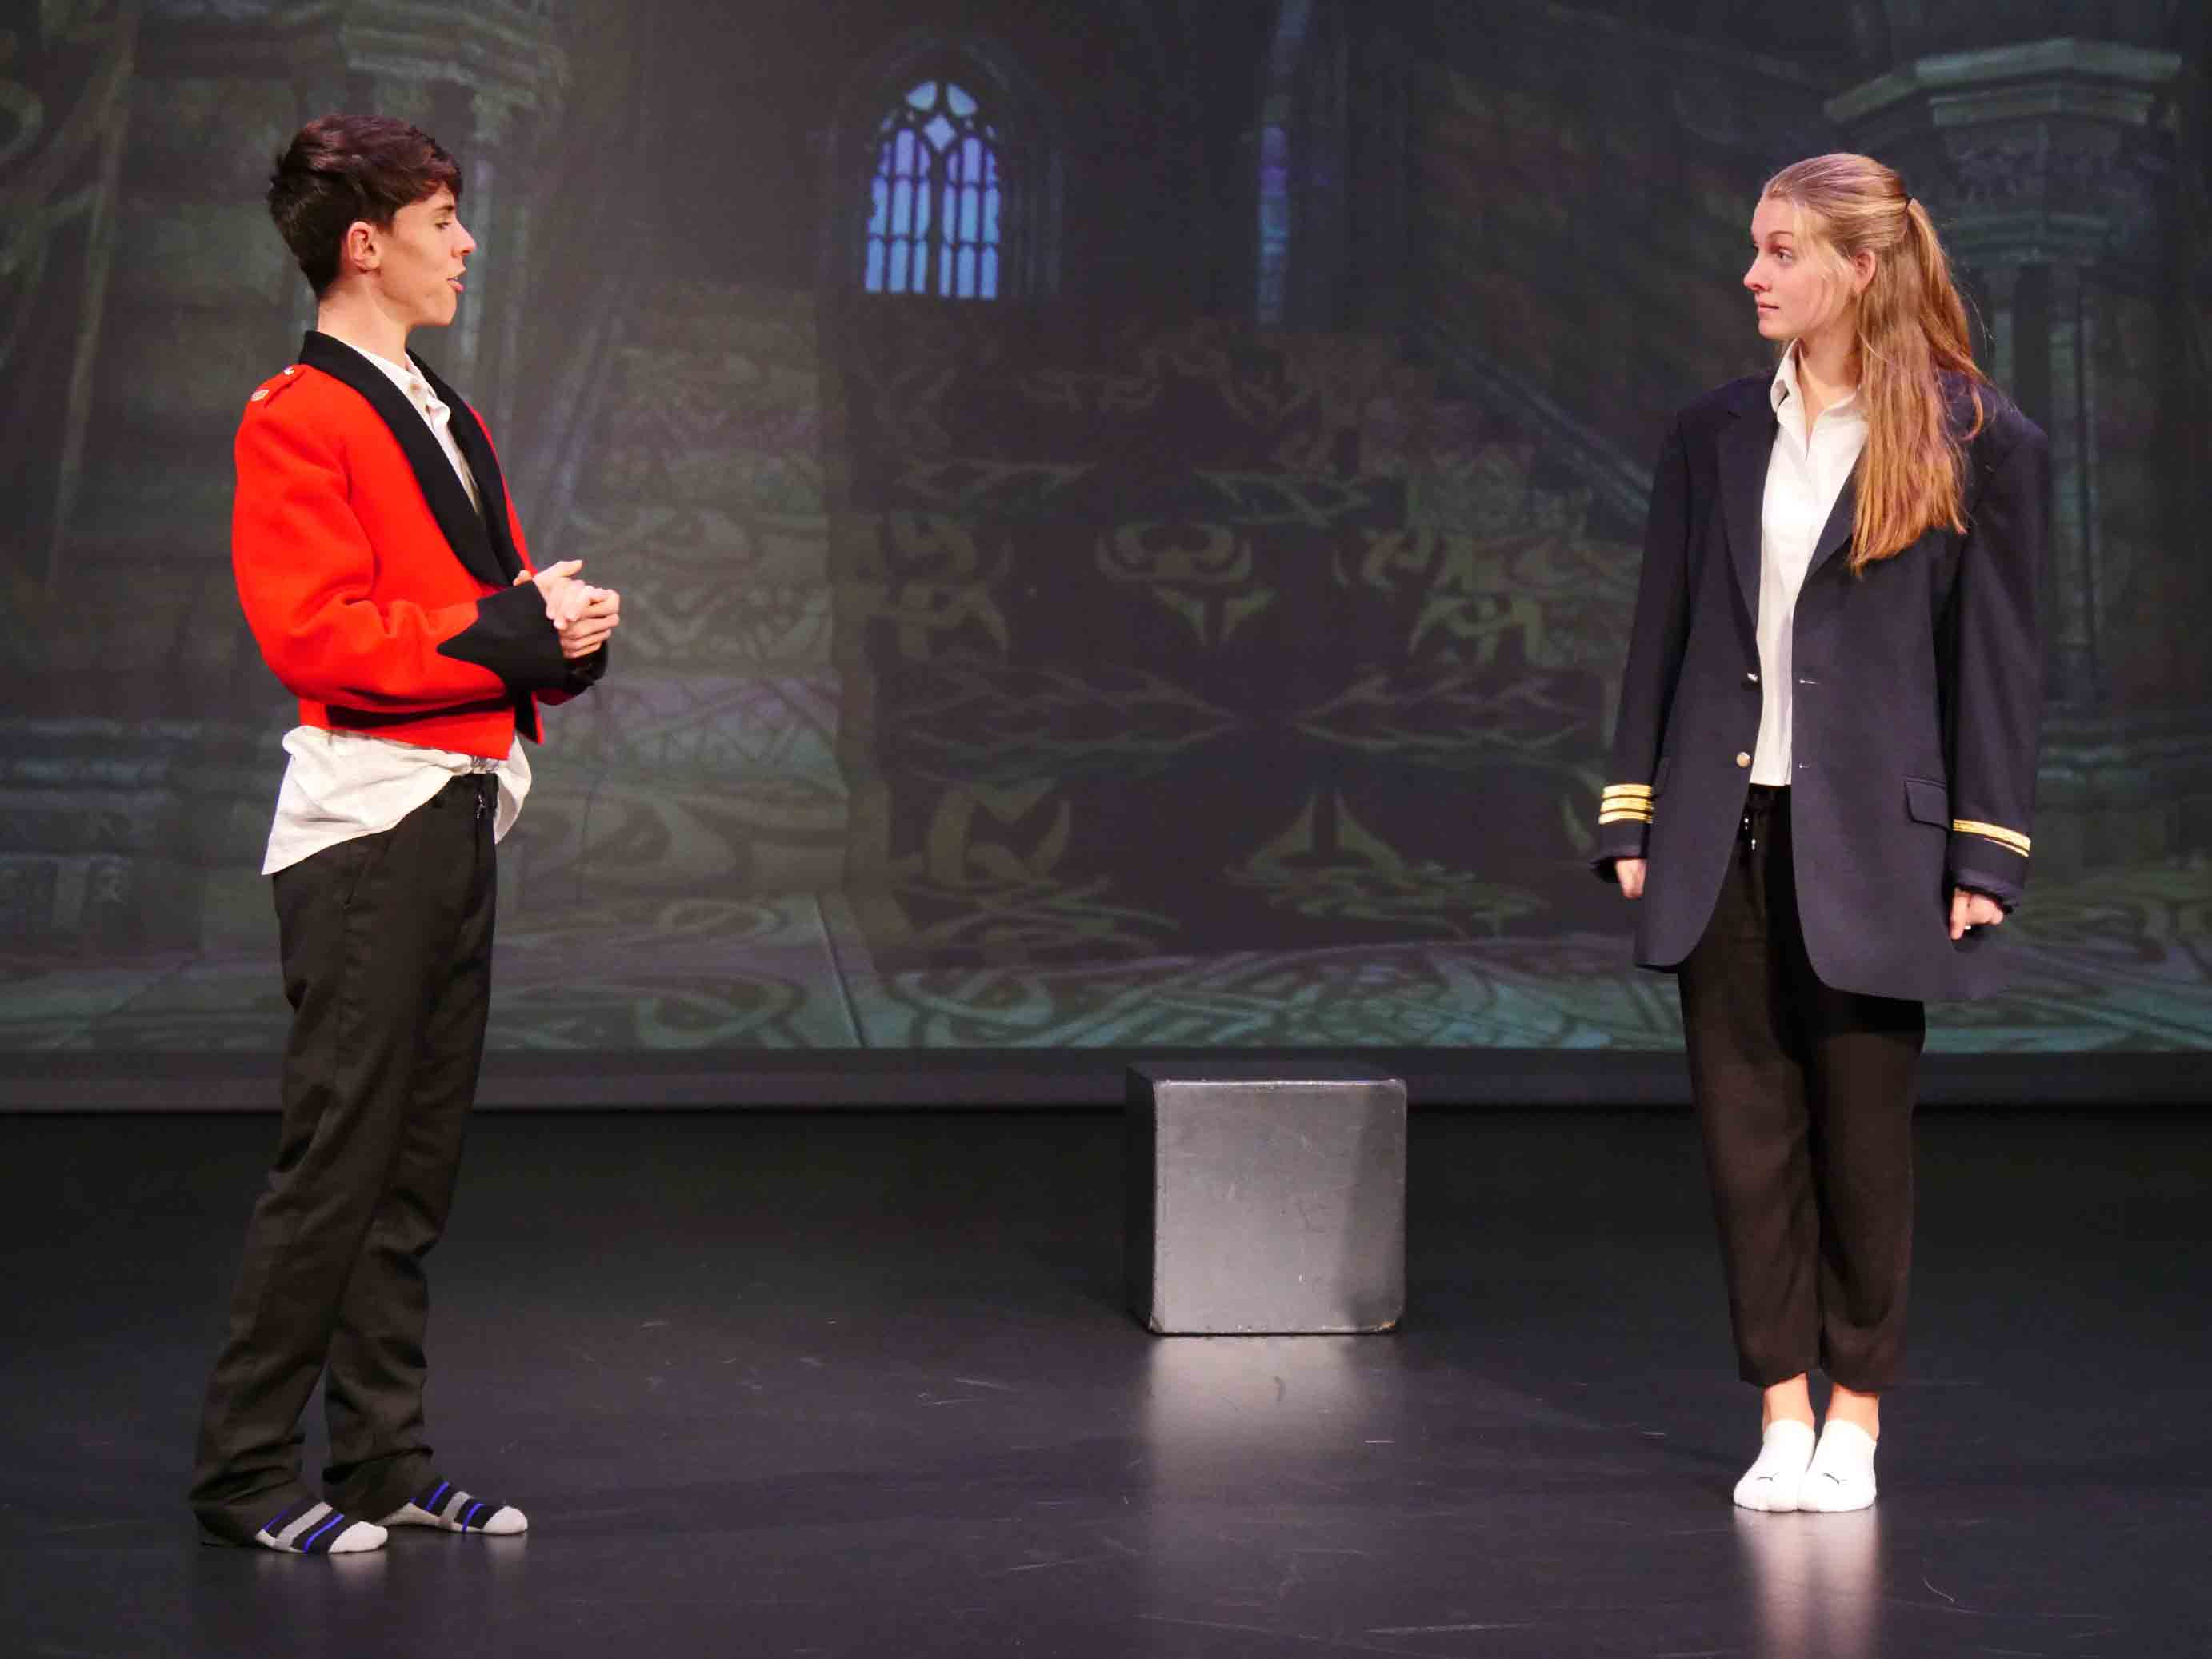 8 Saint-Kentigern-Senior-College-Year-12-NCEA-Drama-Assessment Rosencrantz.jpg